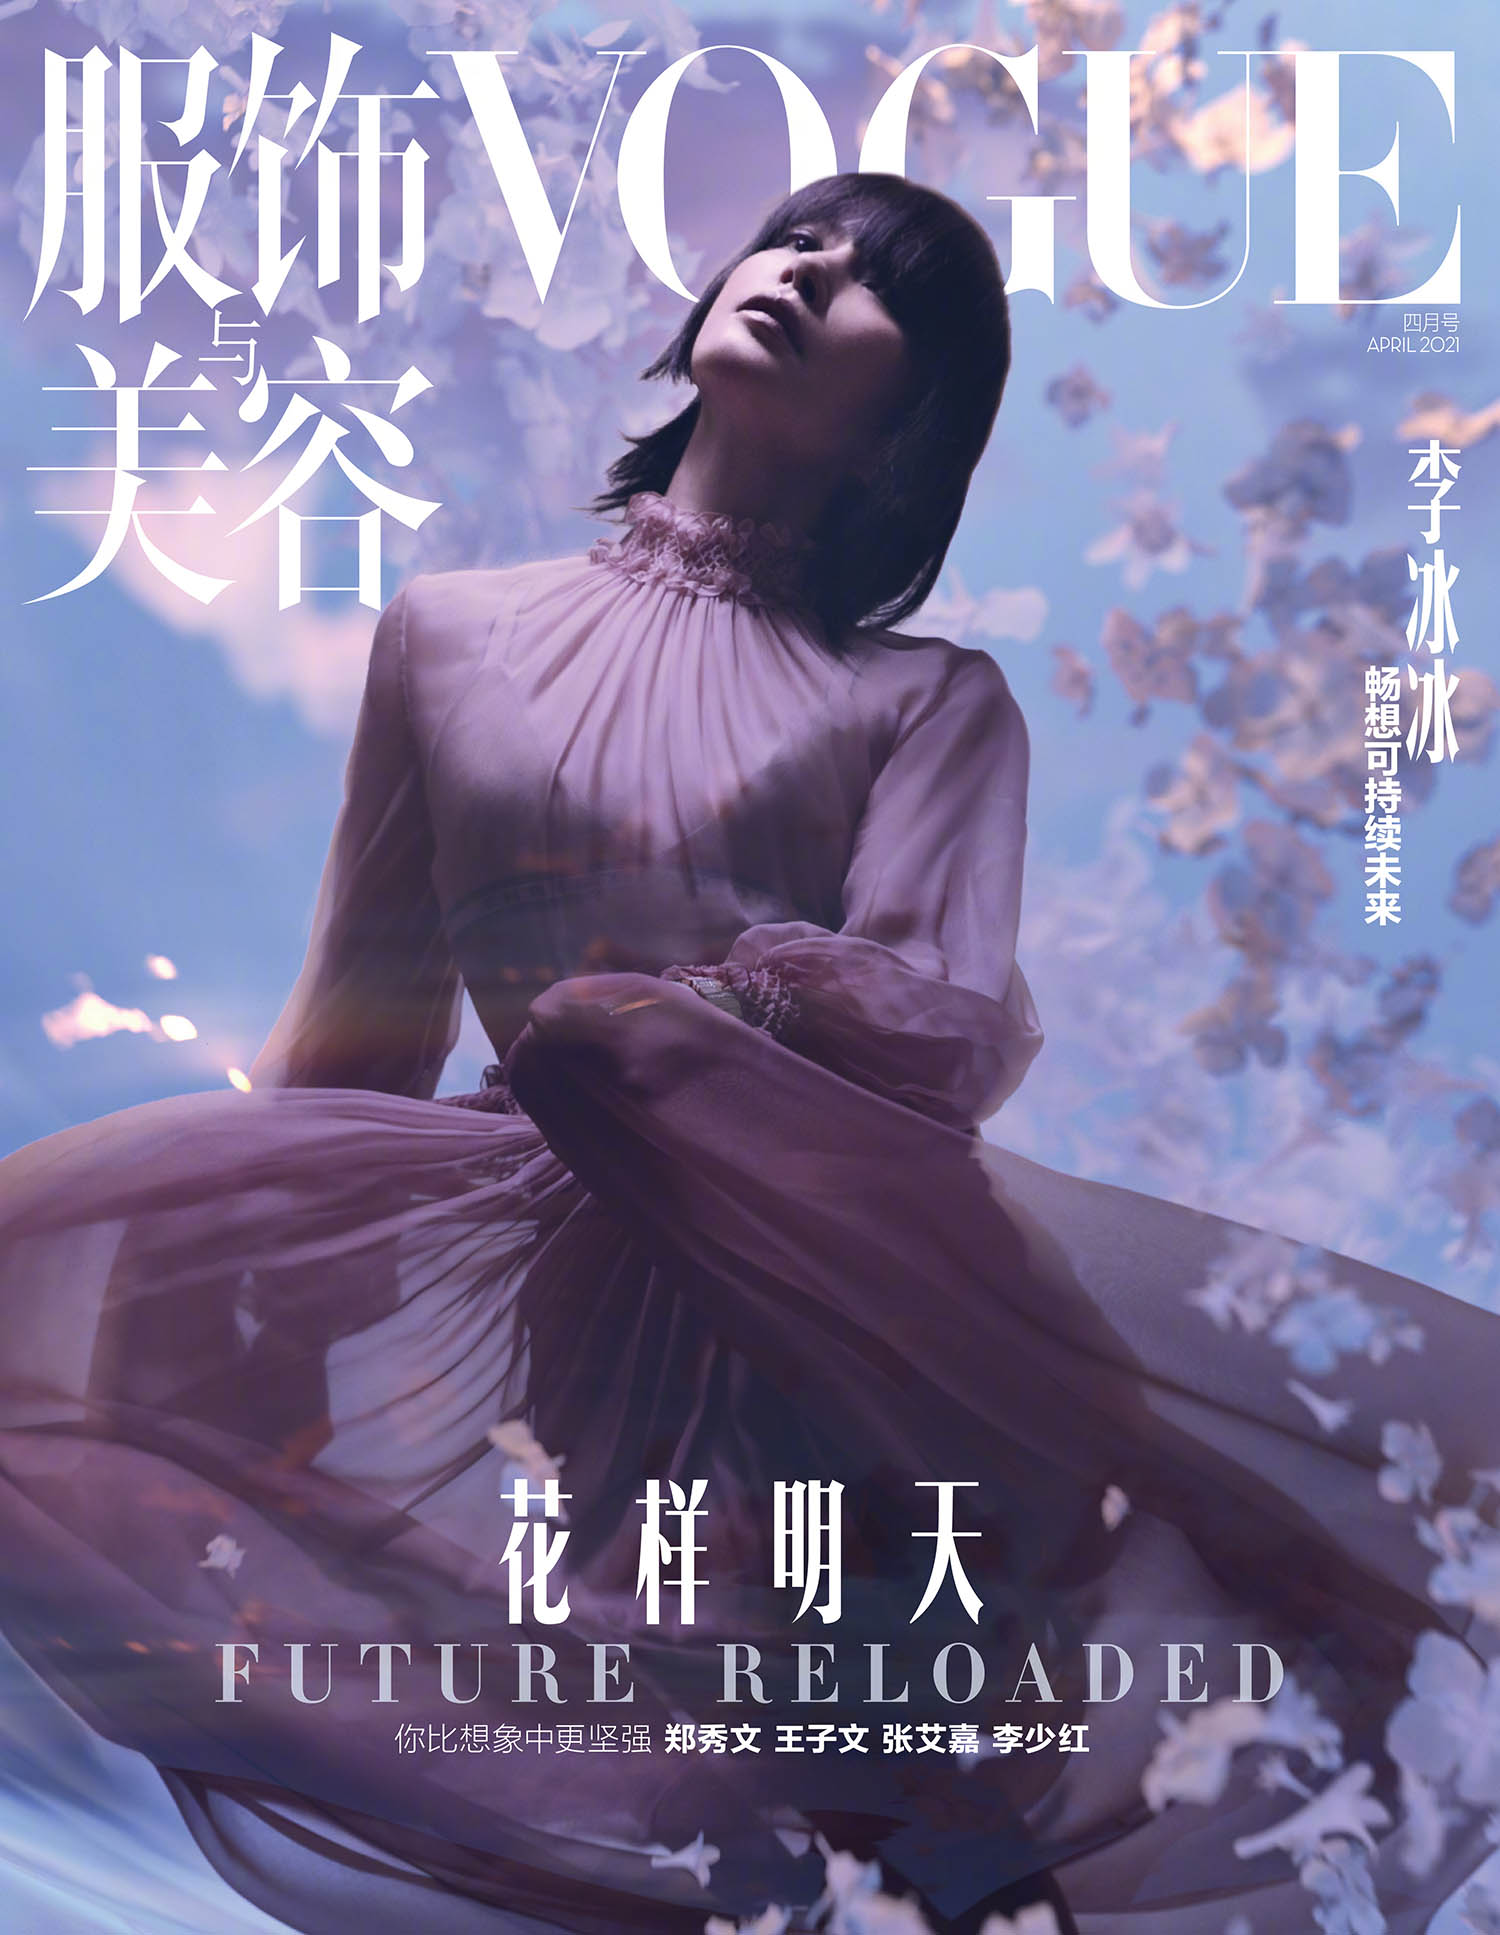 Li Bingbing covers Vogue China April 2021 by Chen Man